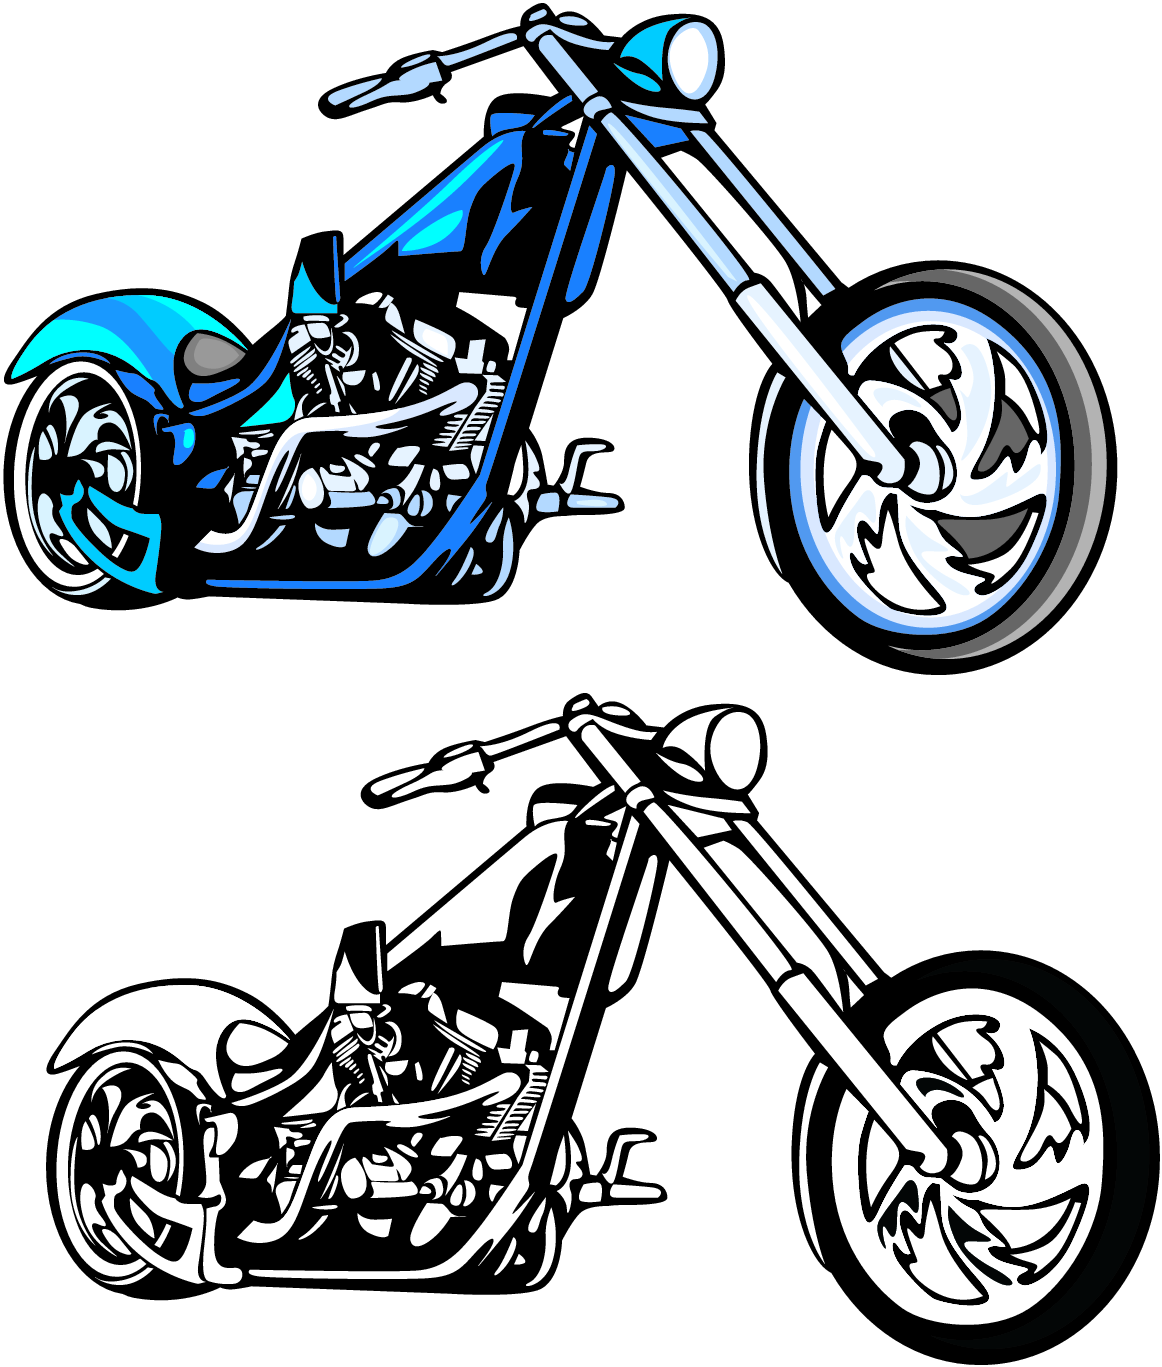 1162x1367 Motorcycle Clipart Chopper